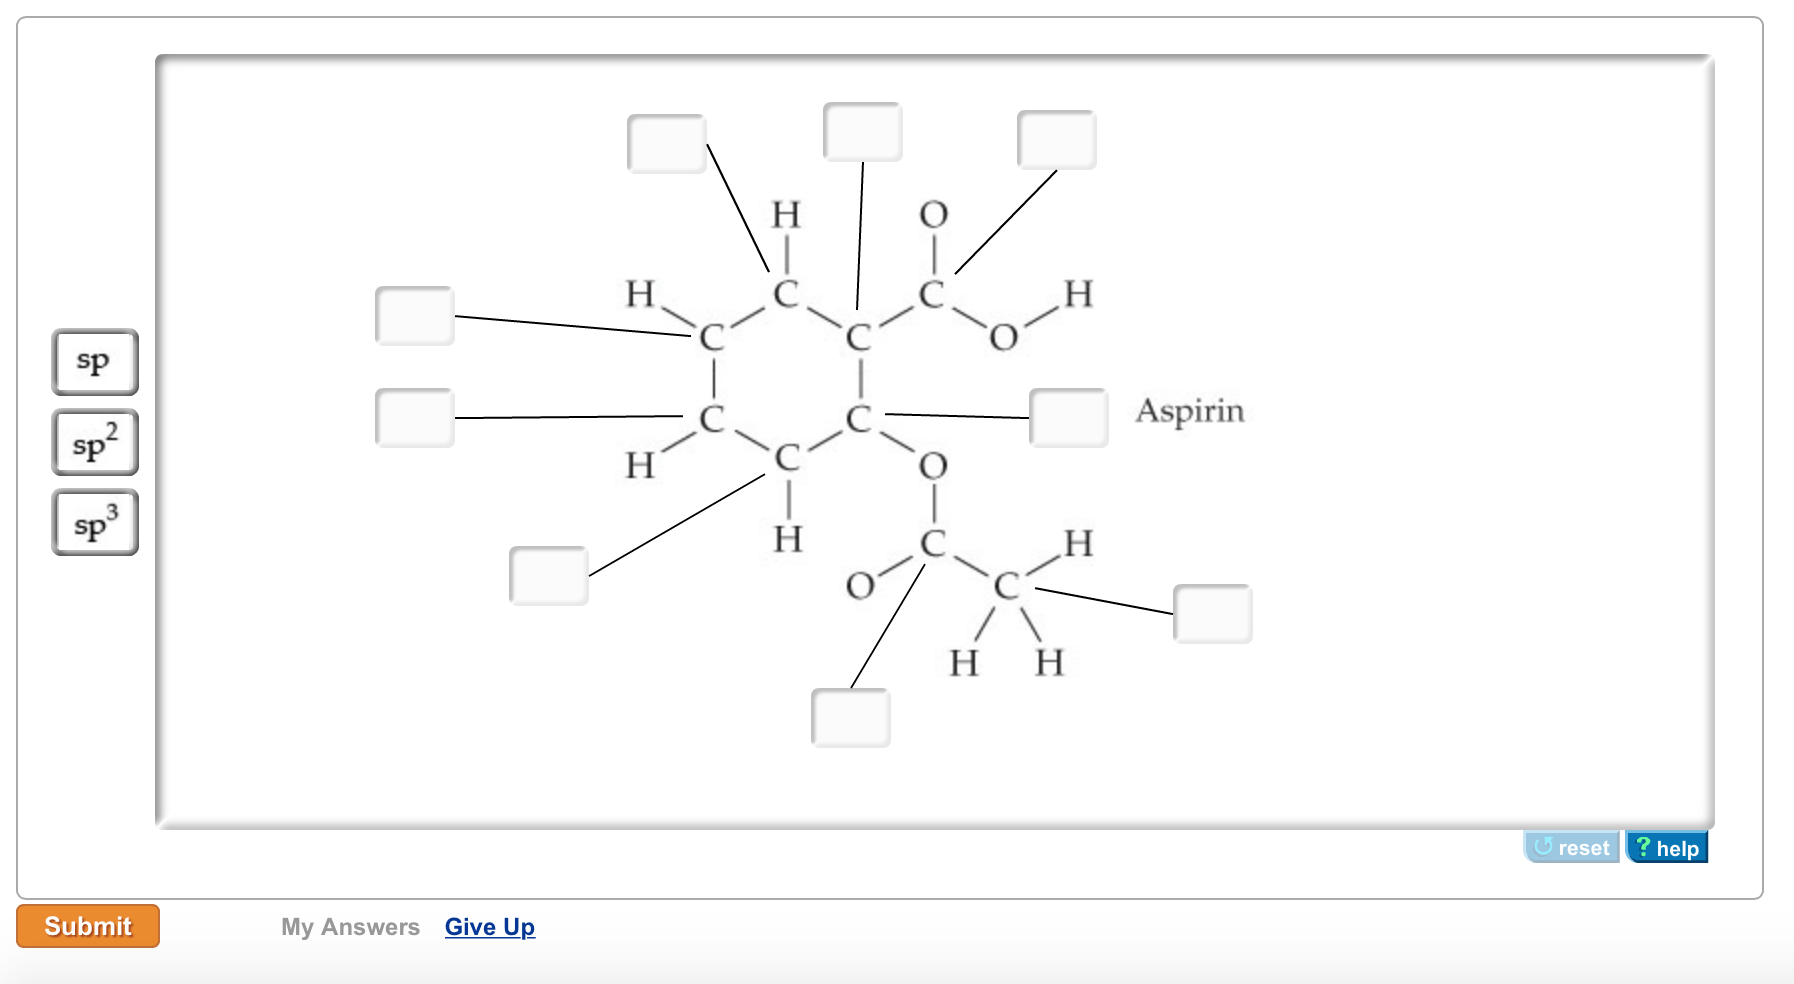 electron dot diagram for ca hunter sailboat rigging solved part a aspirin has the following connections among